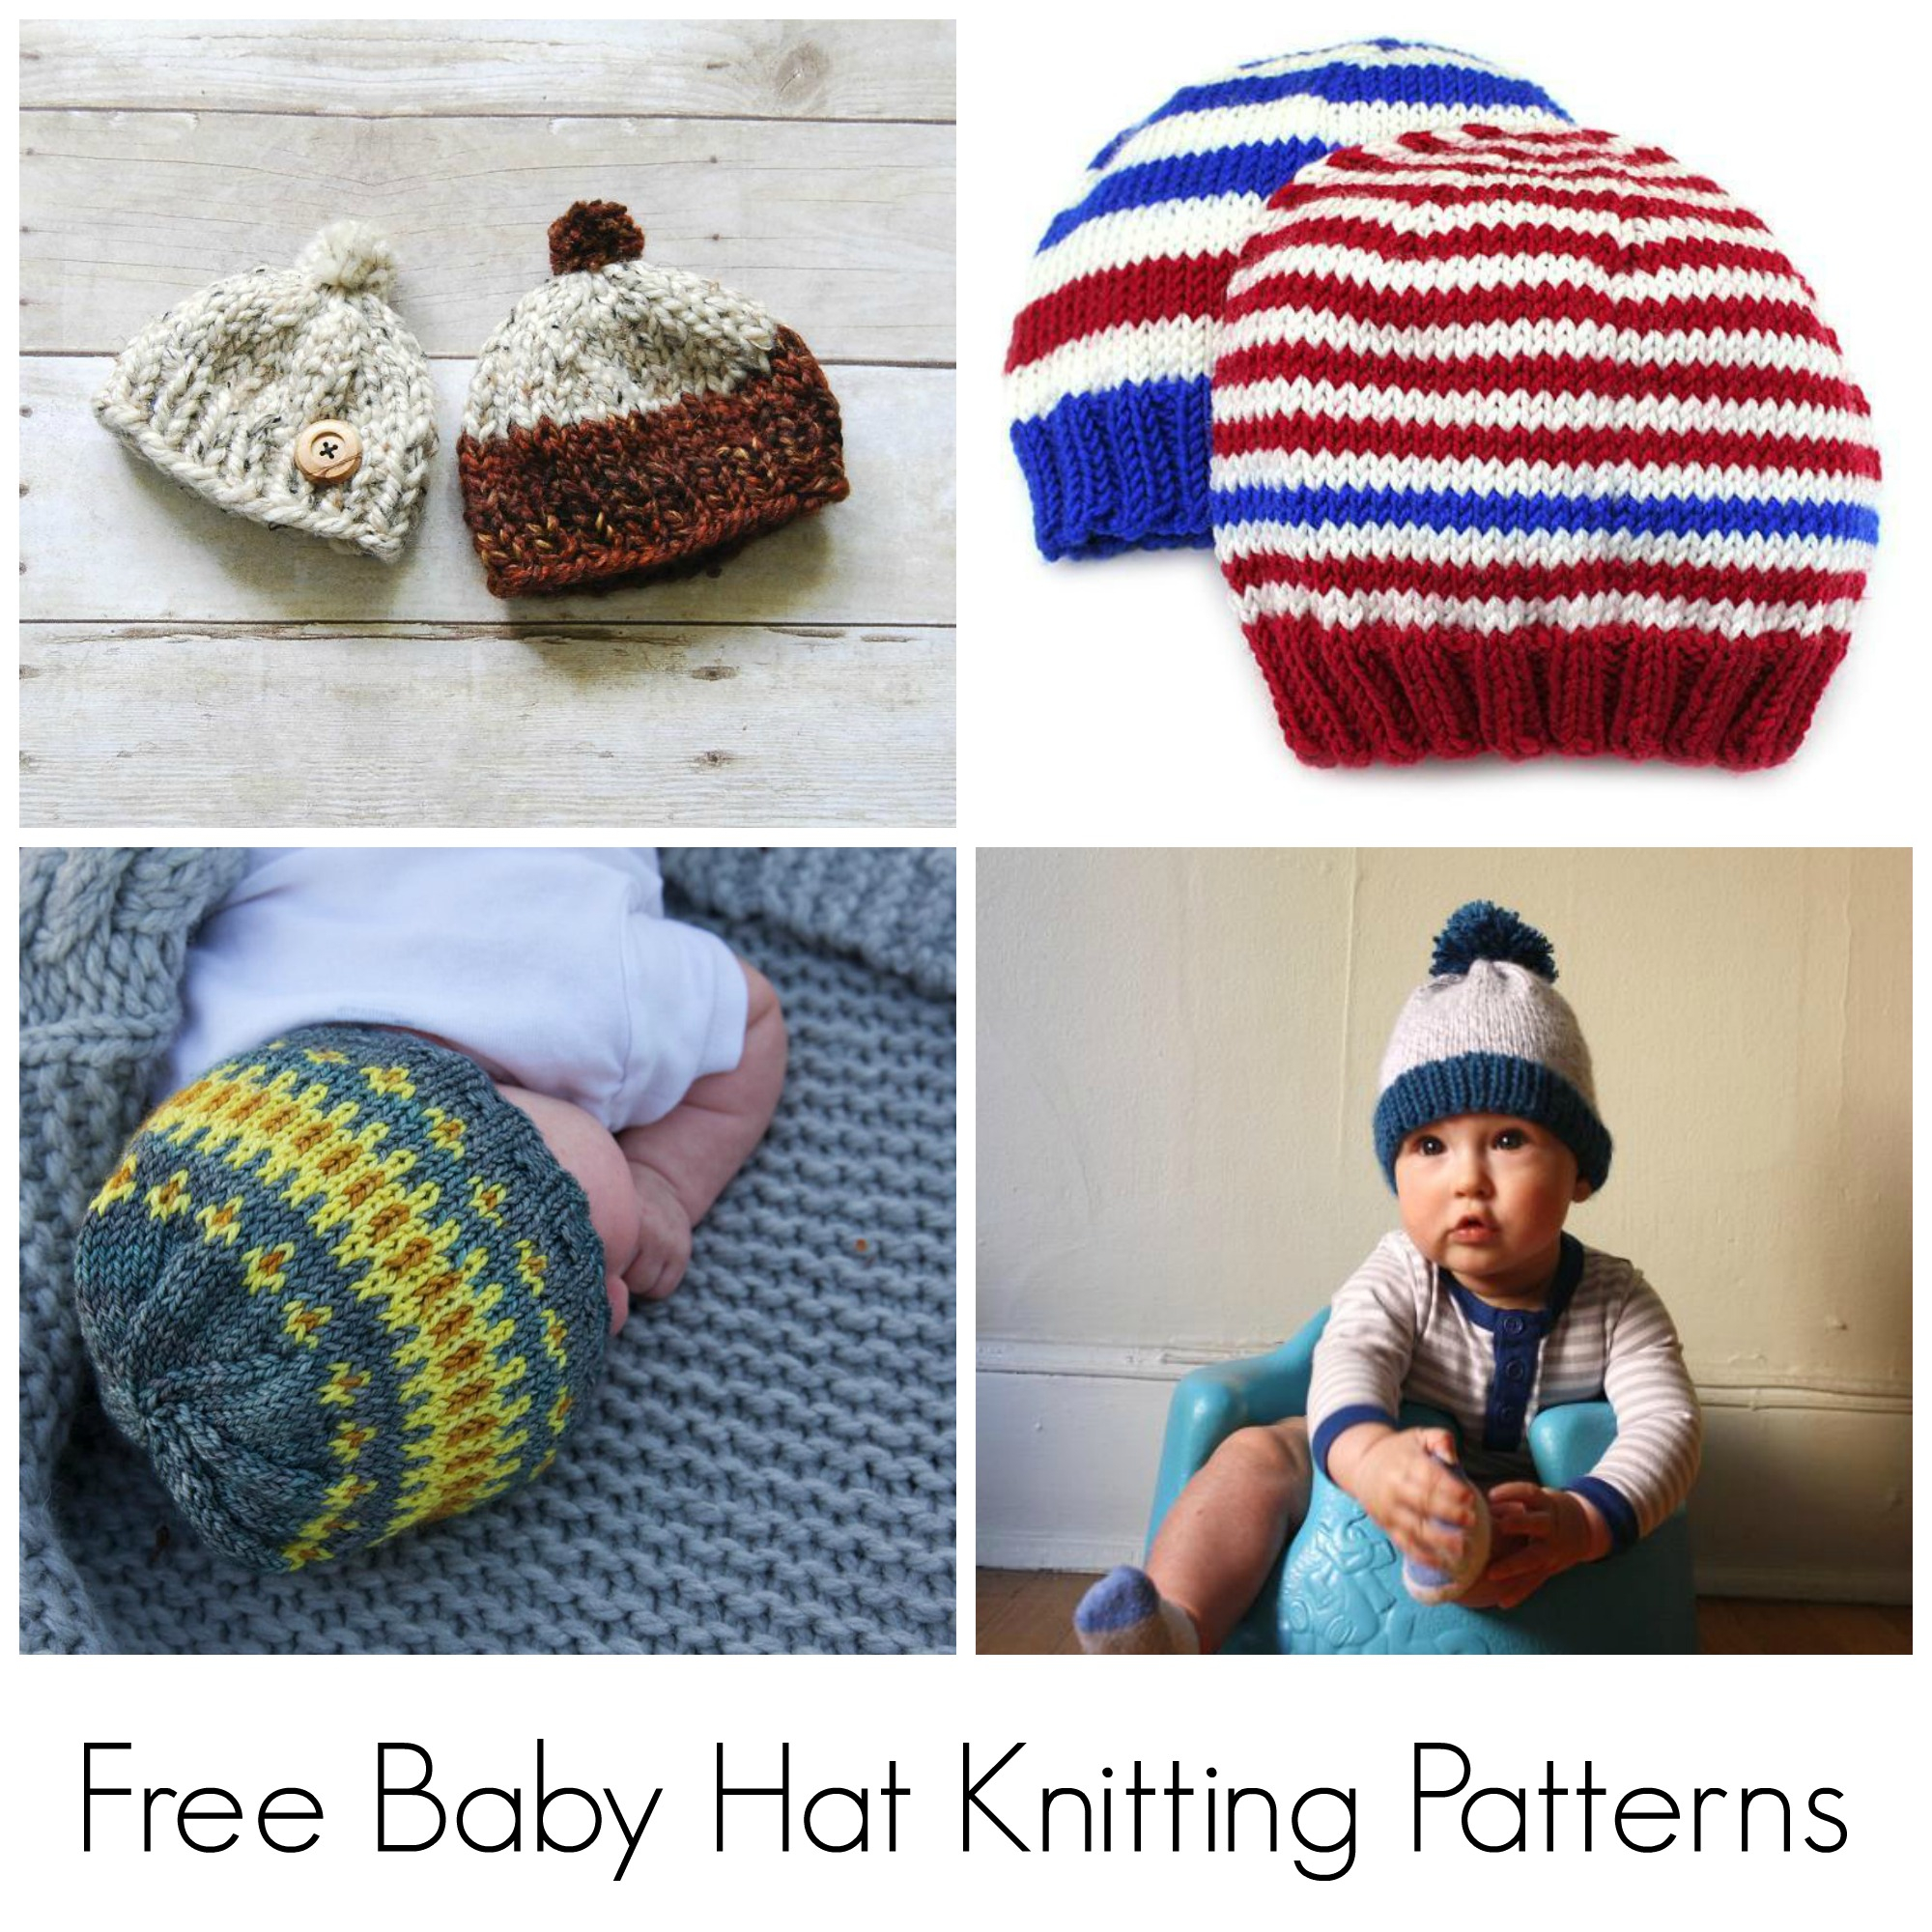 Trendy Baby Knitting Patterns 10 Free Knitting Patterns For Ba Hats On Craftsy